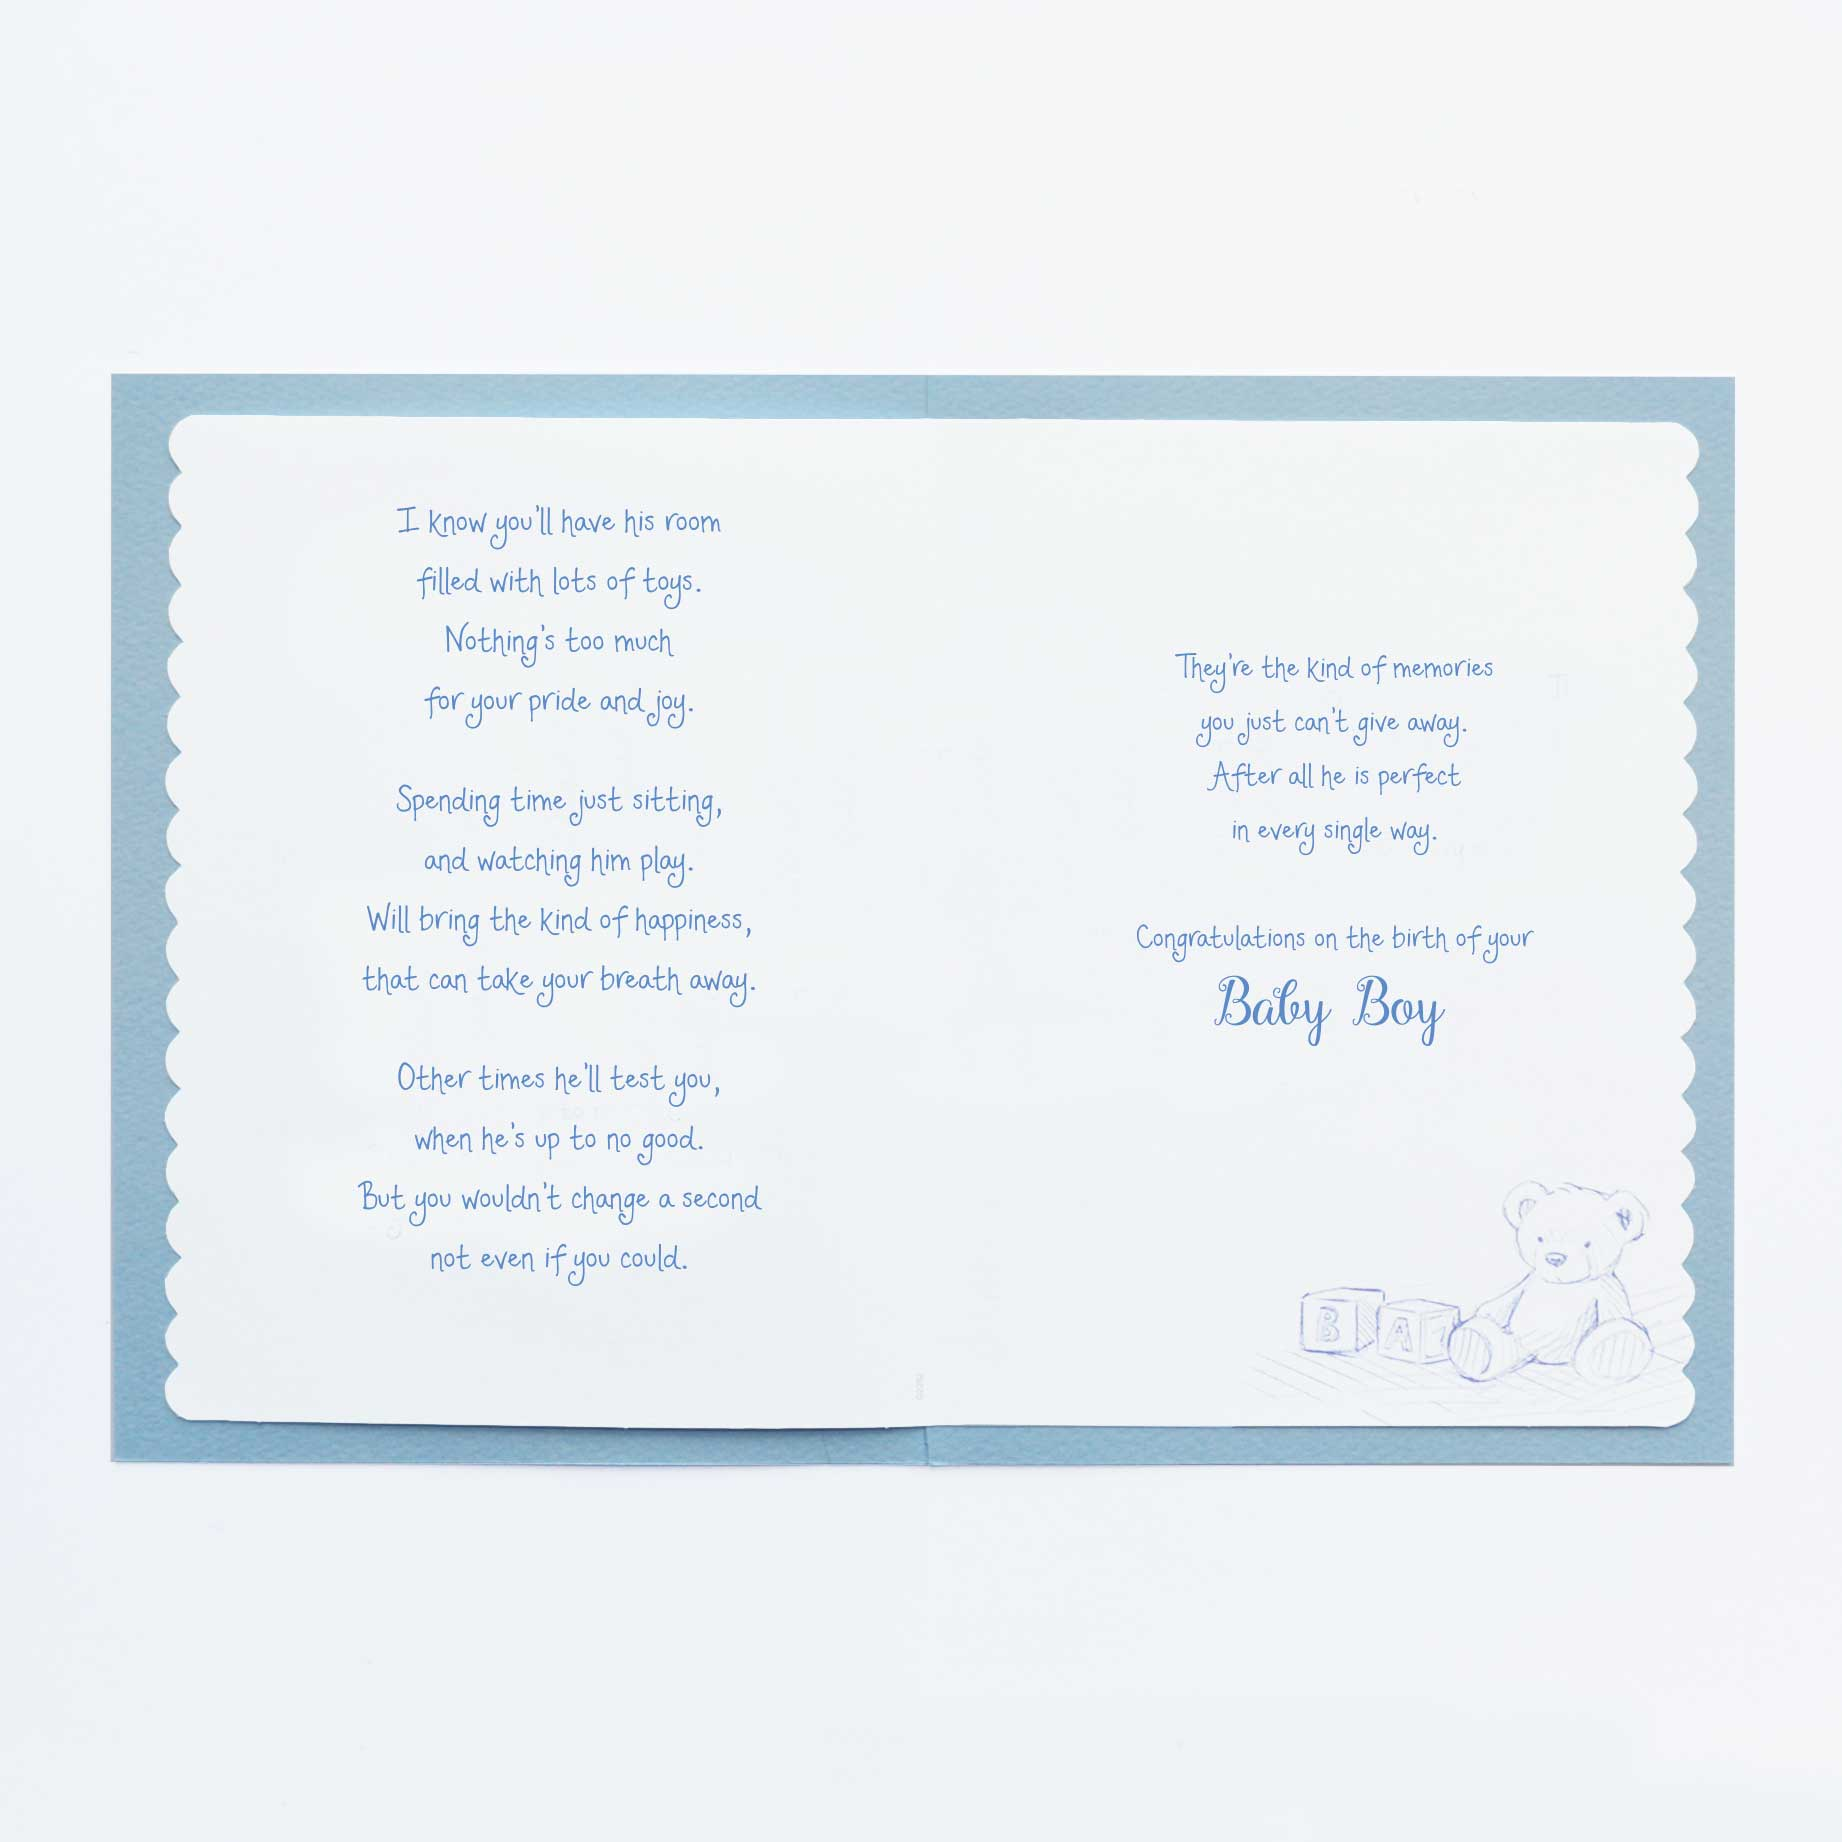 Enthralling Warmth Baby Boy Card Garlanna Greeting Cards Congratulations On Your Baby Boy Ny Congratulations On Your Baby Boy Printable Cards Words Warmth Baby Boy Card Words baby shower Congratulations On Your Baby Boy